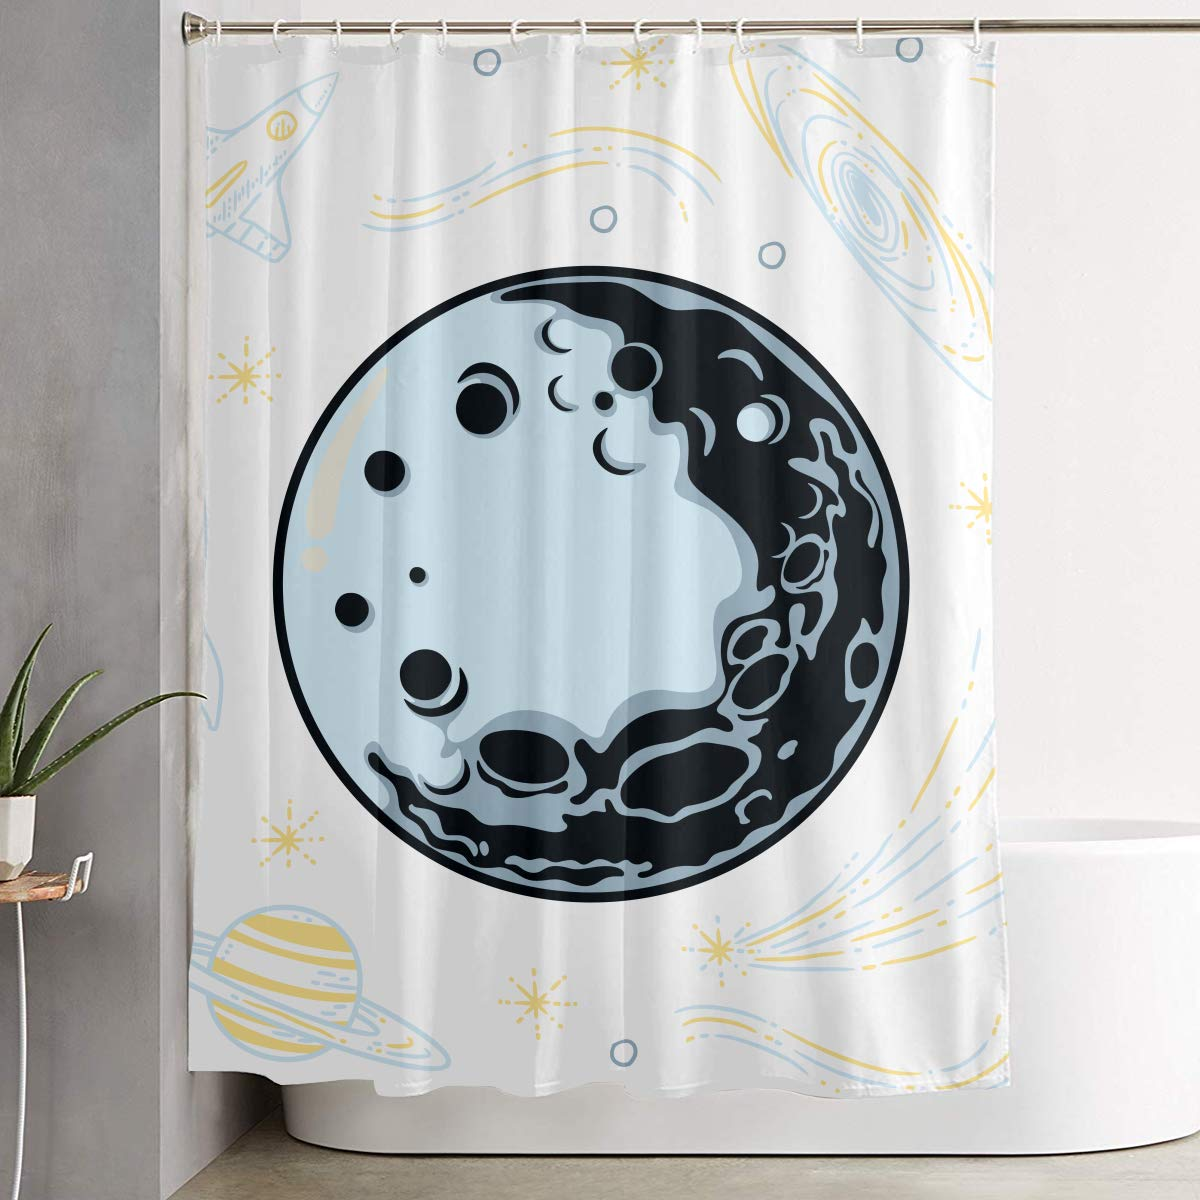 Bathroom Shower Curtain 150*150cm Bath Cutain Waterproof Polyester Fabric